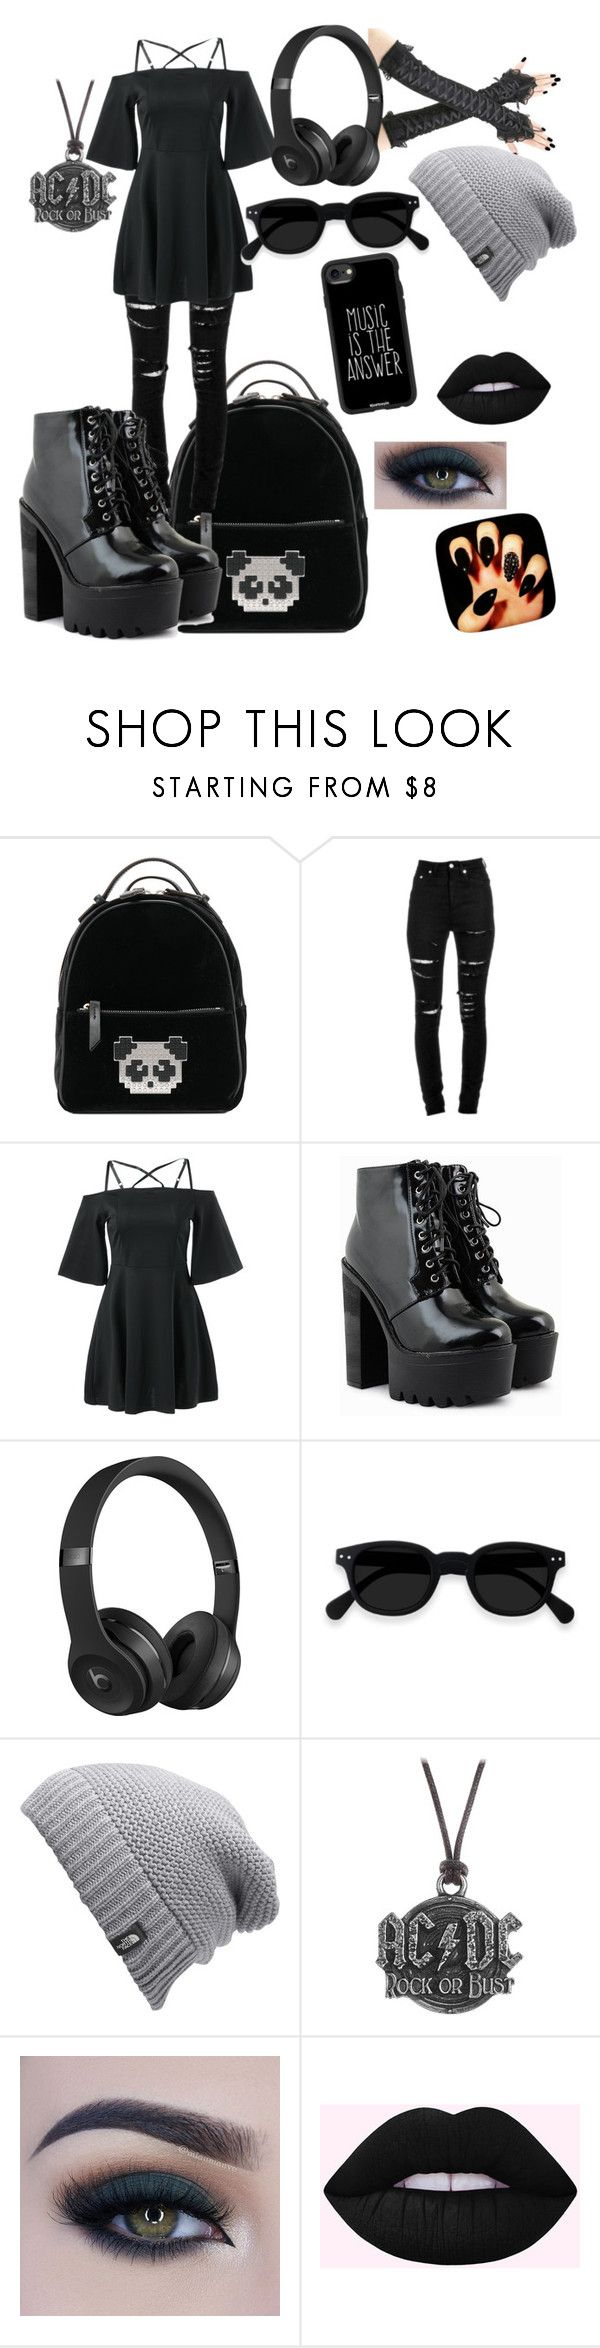 """Back Grayson  (young justice oc for fanfiction) main outfit"" by eloracount on Polyvore featuring Les Petits Joueurs, Yves Saint Laurent, Beats by Dr. Dre, The North Face, AC/DC, Too Faced Cosmetics and Casetify"